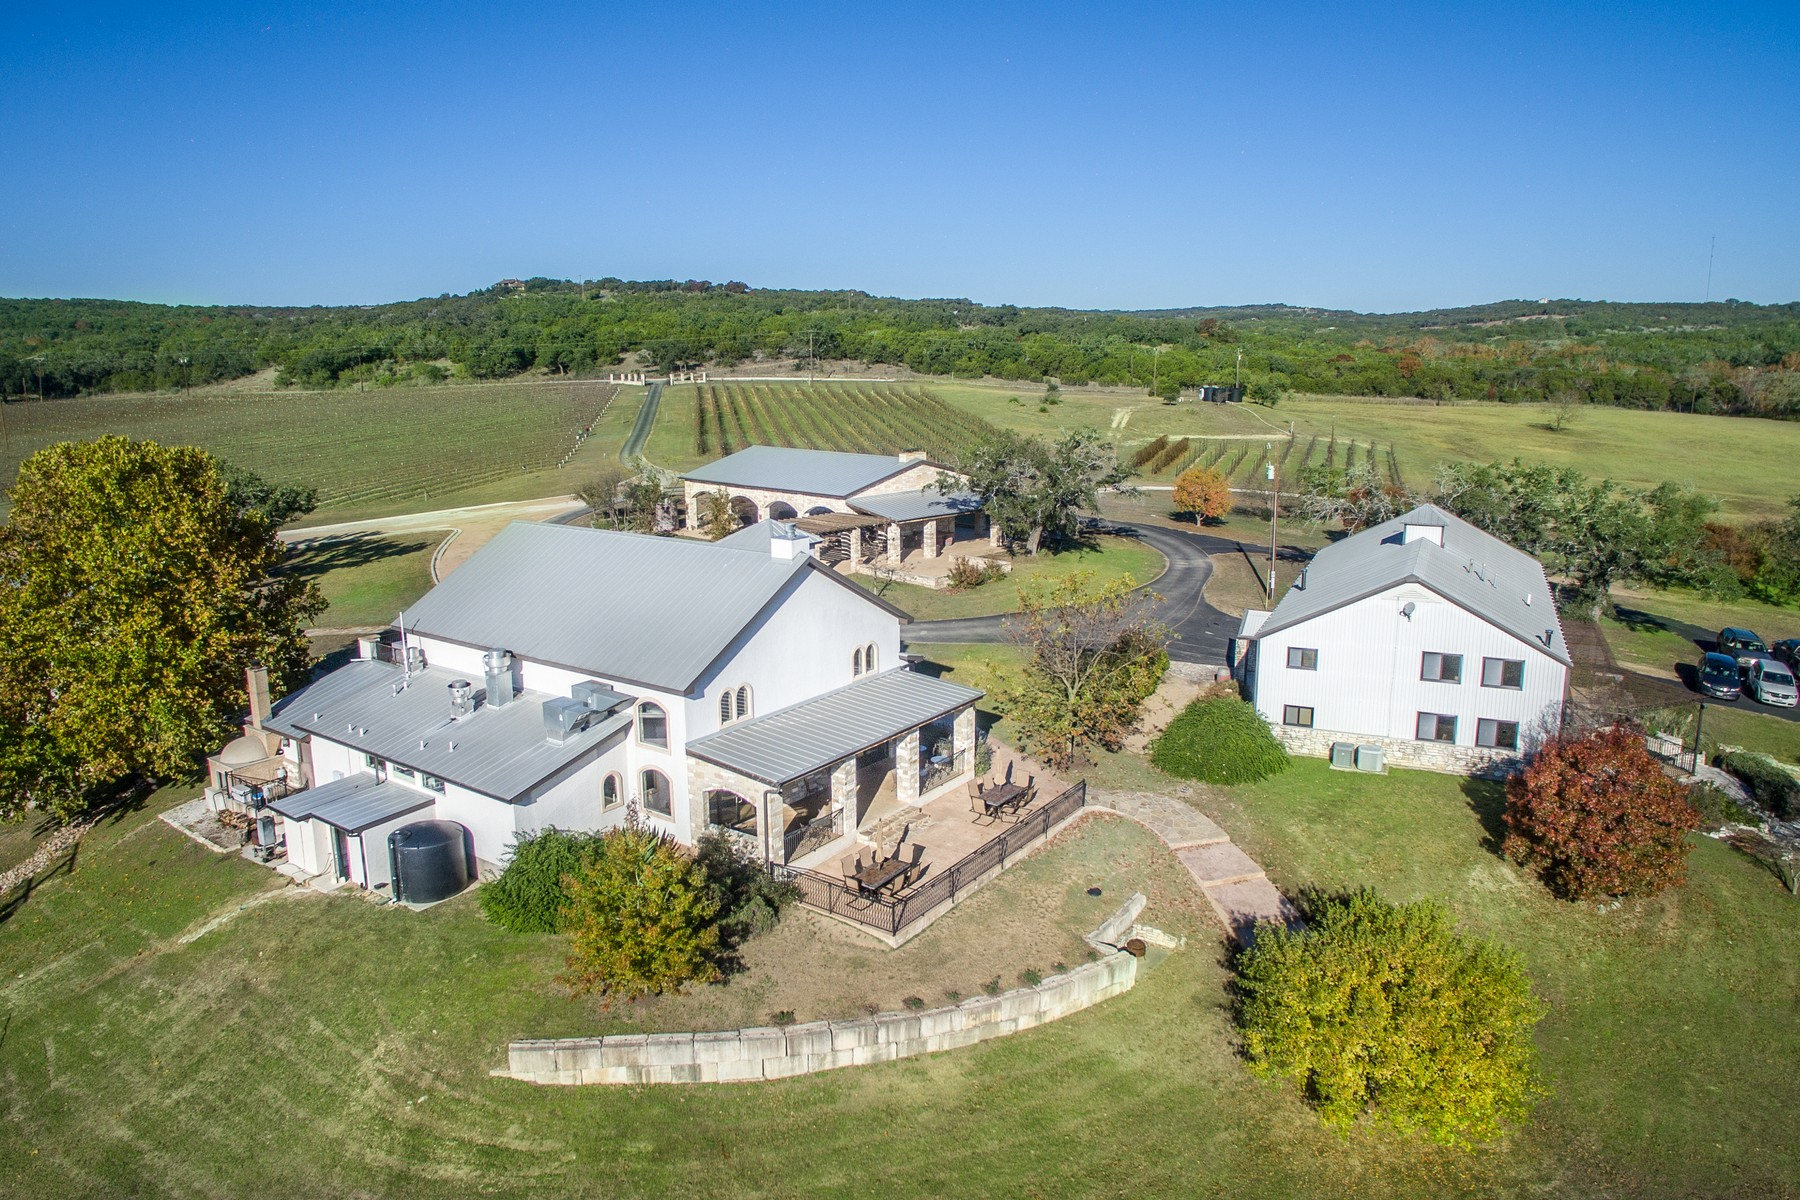 Vivienda unifamiliar por un Venta en The Crown Jewel of Texas Wineries 24912 Singleton Bend East Rd Marble Falls, Texas 78654 Estados Unidos